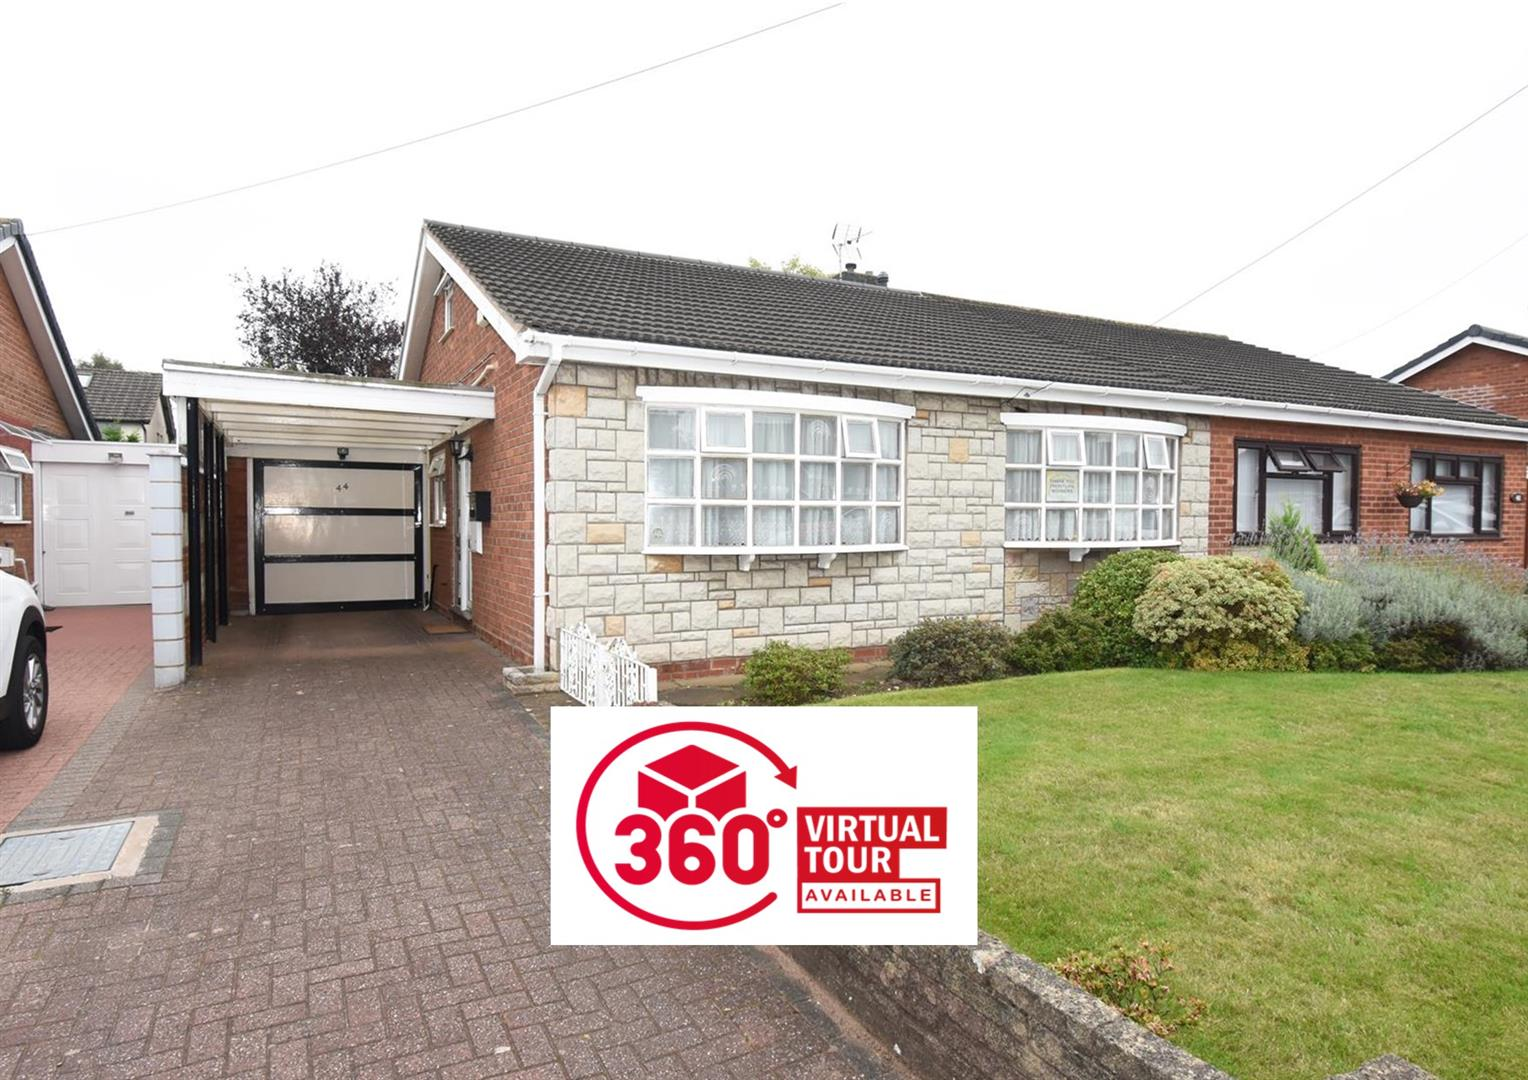 2 bed bungalow for sale in Hilltop Drive, Hodge Hill, Birmingham, B36